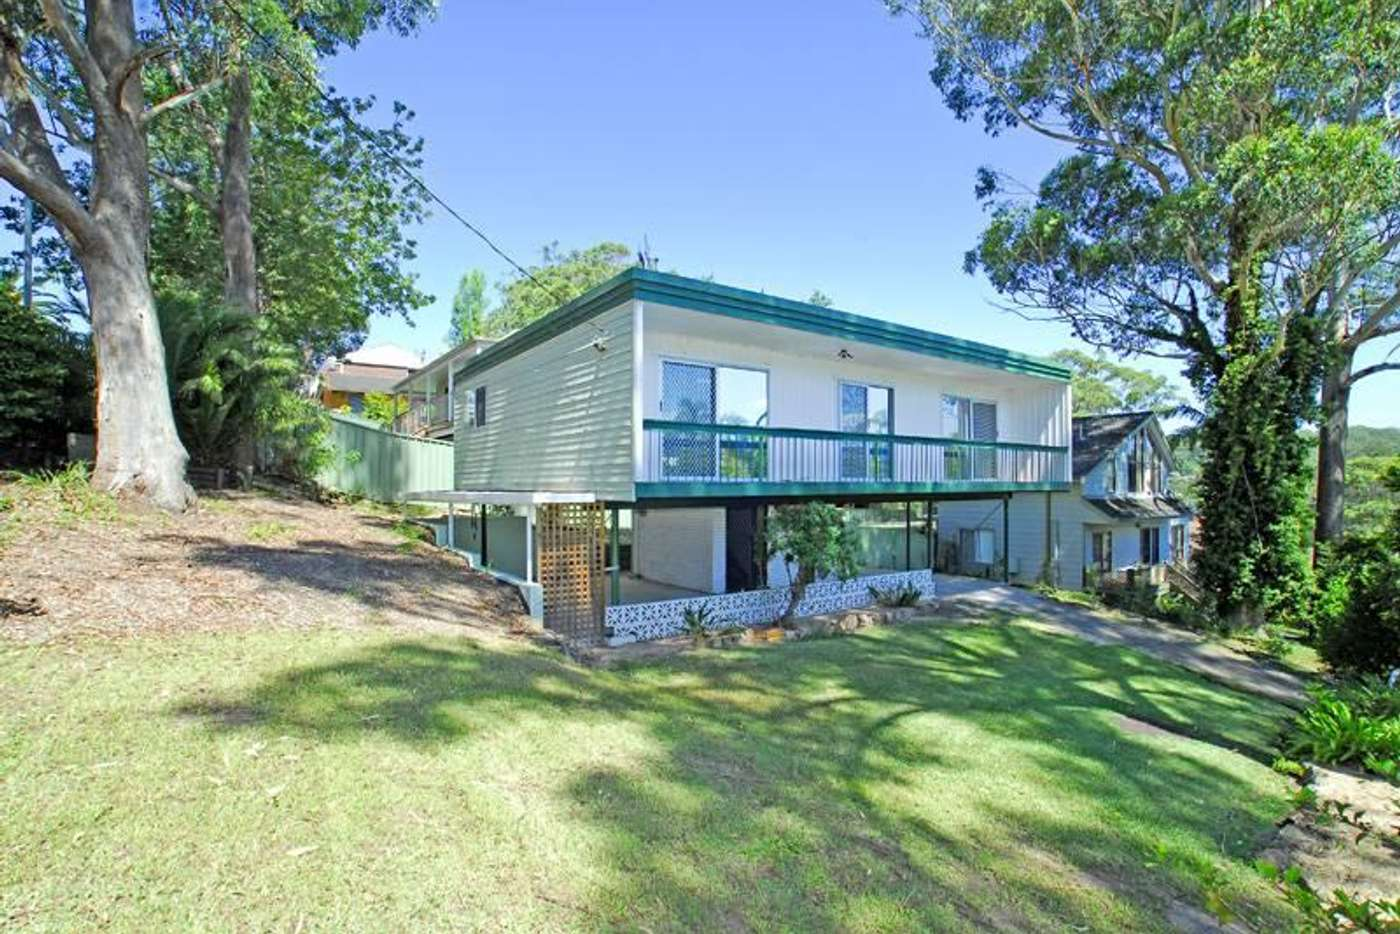 Main view of Homely house listing, 2 Woodland Road, Terrigal NSW 2260